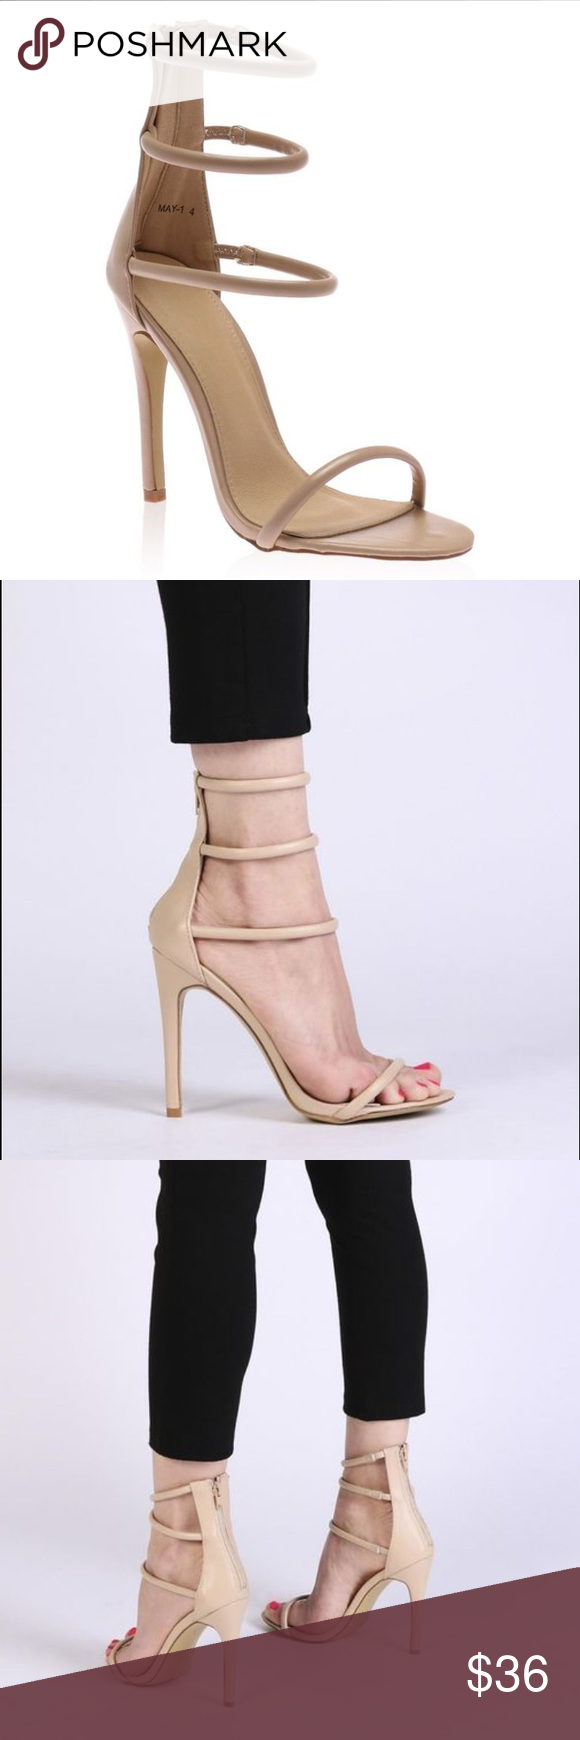 Public Desire Nude Tri-Strap Heels Public Desire Nikki Strappy Stilettos - never worn bc once again, they're too big :( but they fit comfortably on the foot and go with literally EVERYTHING; day or night. *NOT GUISEPPES, they are from Public Desire* Make me an offer! Giuseppe Zanotti Shoes Heels